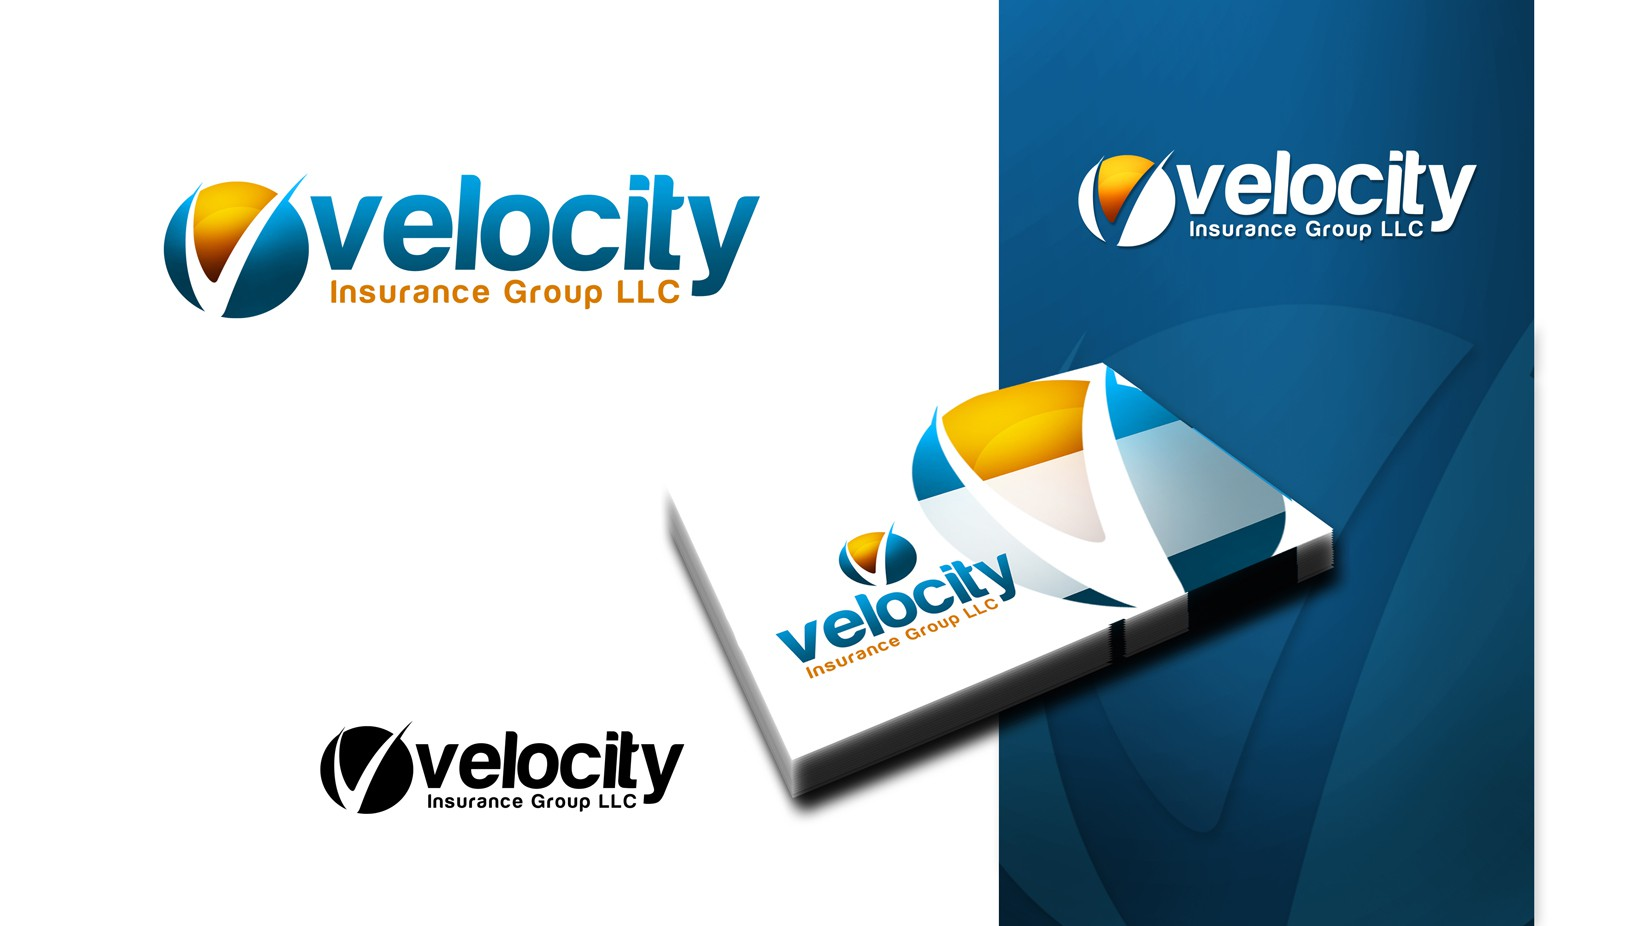 Create the next logo for Velocity Insurance Group LLC